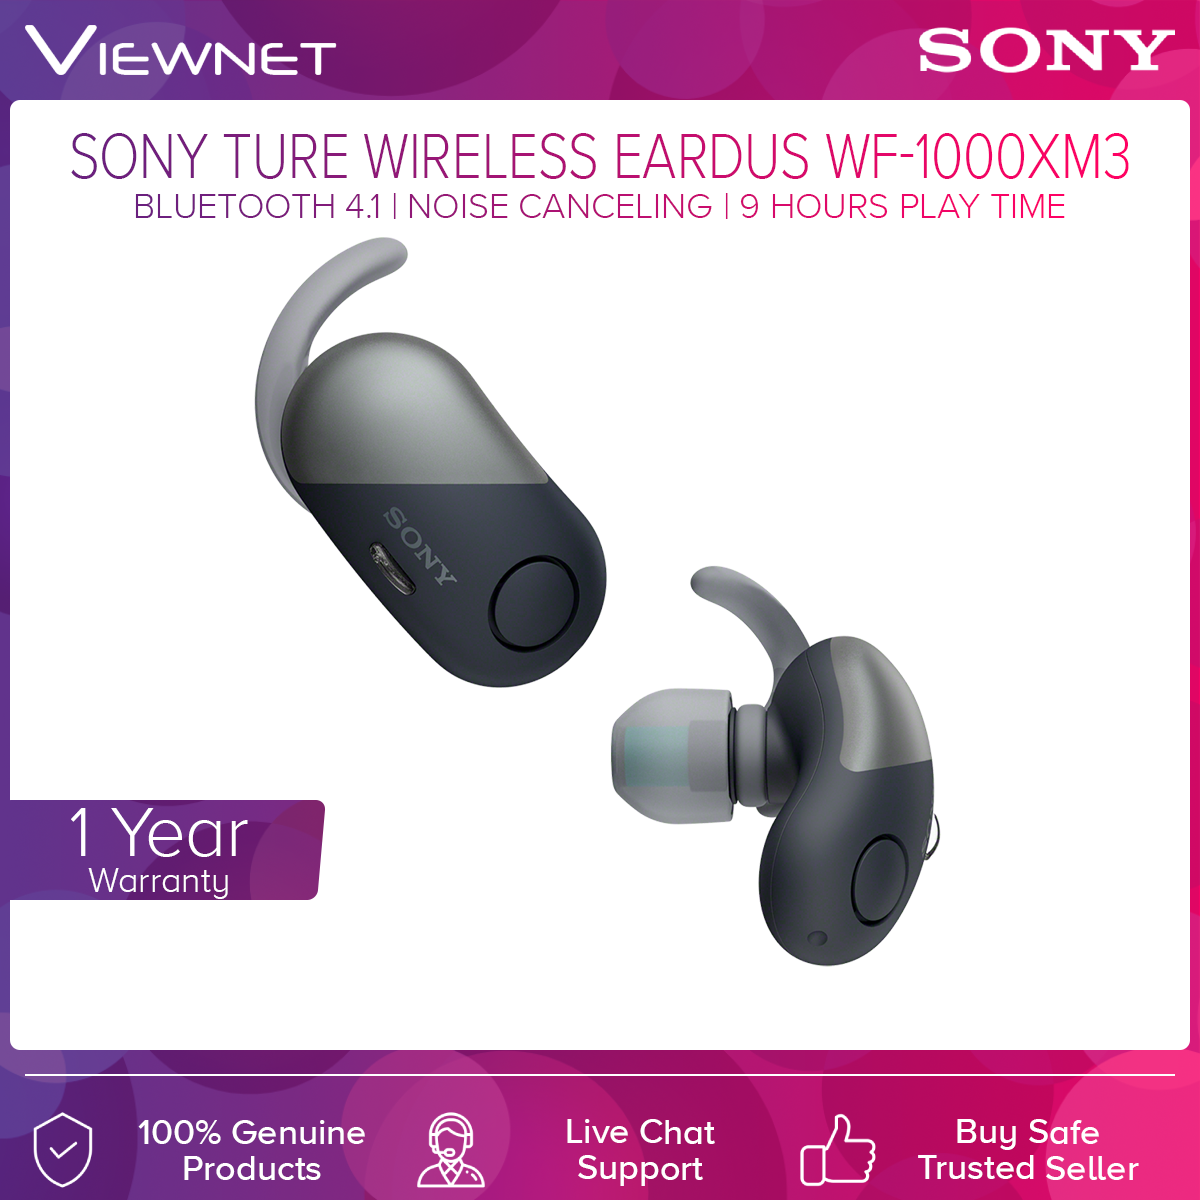 Sony WF-SP700N EXTRA BASS IPX4 Waterproof True Wireless Bluetooth Noise Cancelling Sports In-ear Headphones with Charging Case (Black/White/Yellow/Pink) NFC, Hands-free Calling, Voice Assistant Compatible, Ambient Sound Mode, Up to 3 Hours Battery Life